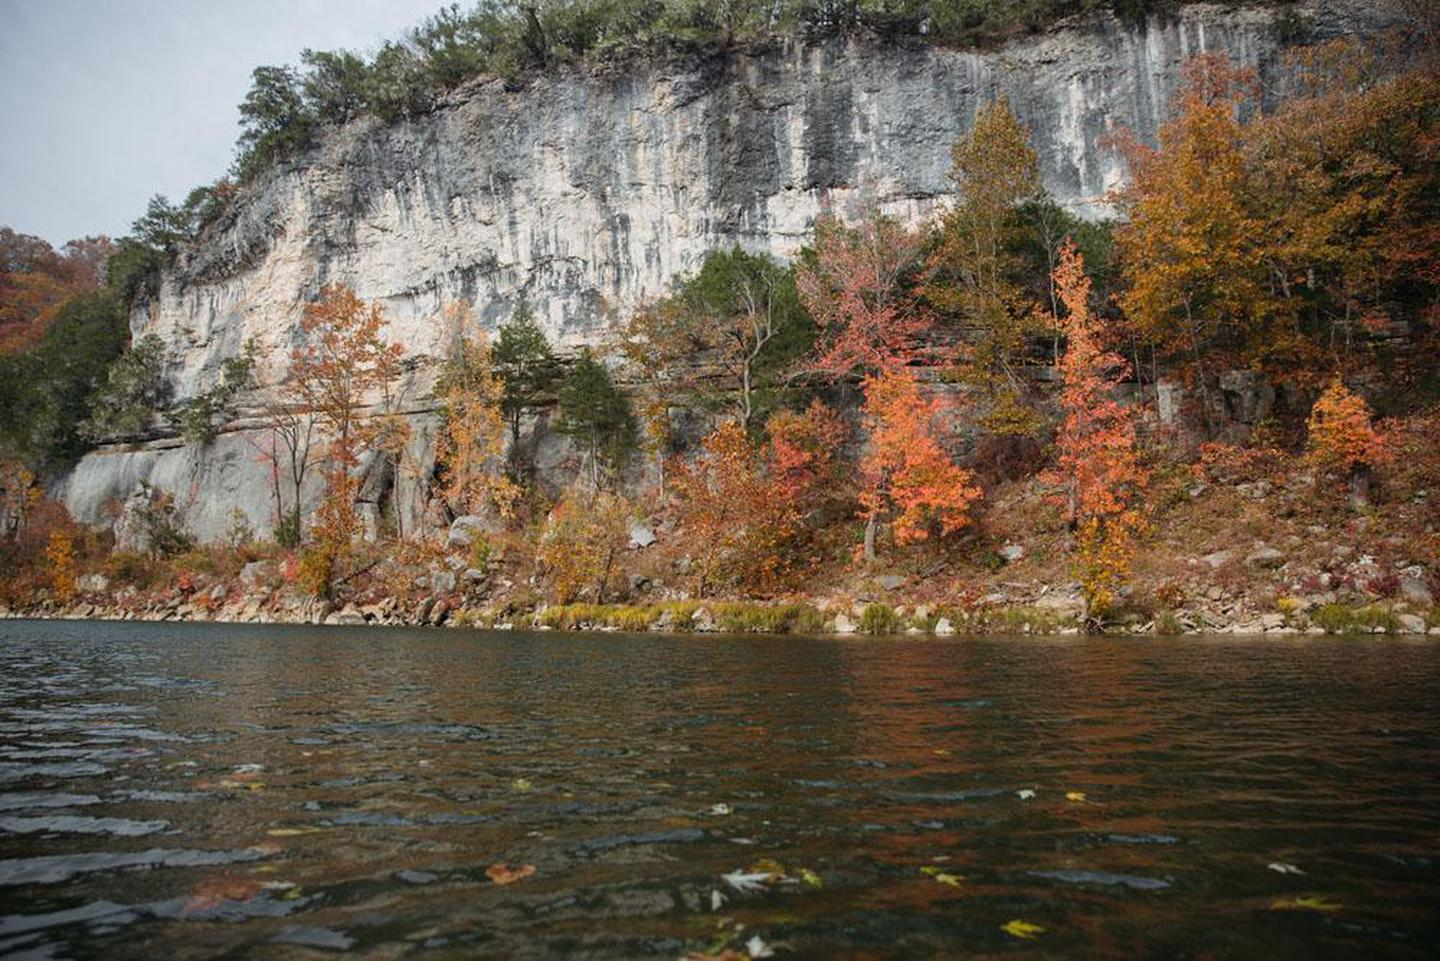 Bluffs at Tyler BendBluffs provide a dramatic backdrop to the river at Tyler Bend.